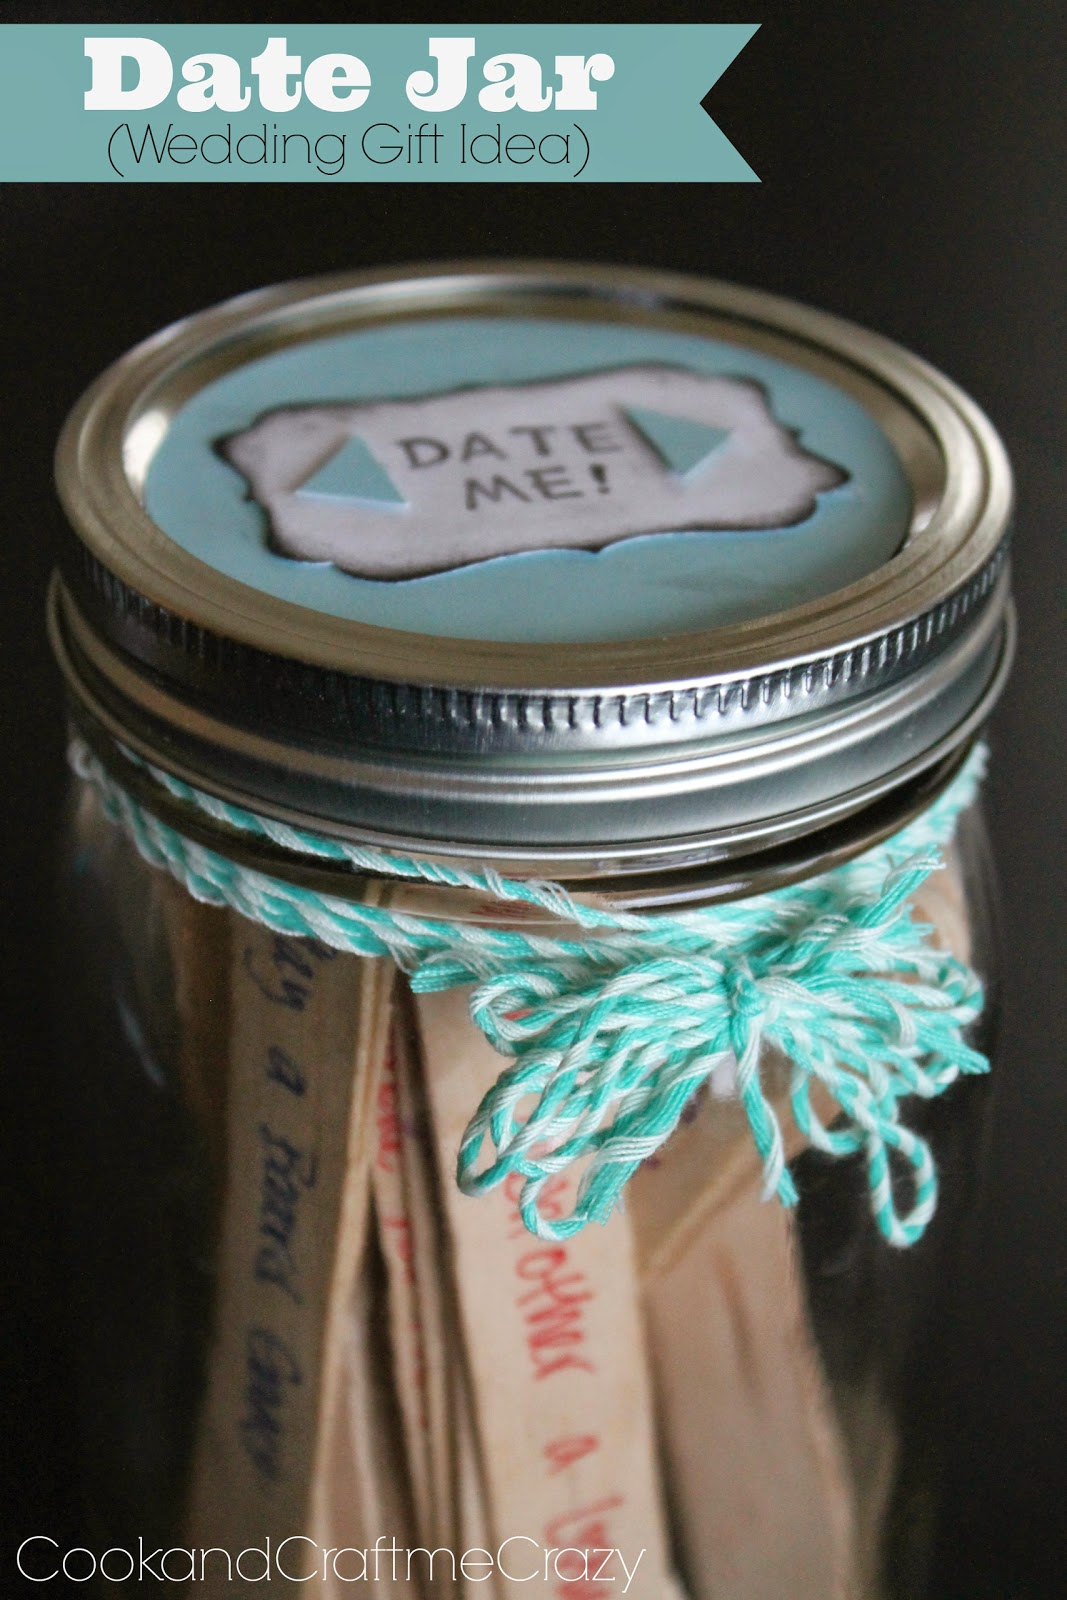 http://cookandcraftmecrazy.blogspot.com/2014/03/date-jar-wedding-gift-idea.html